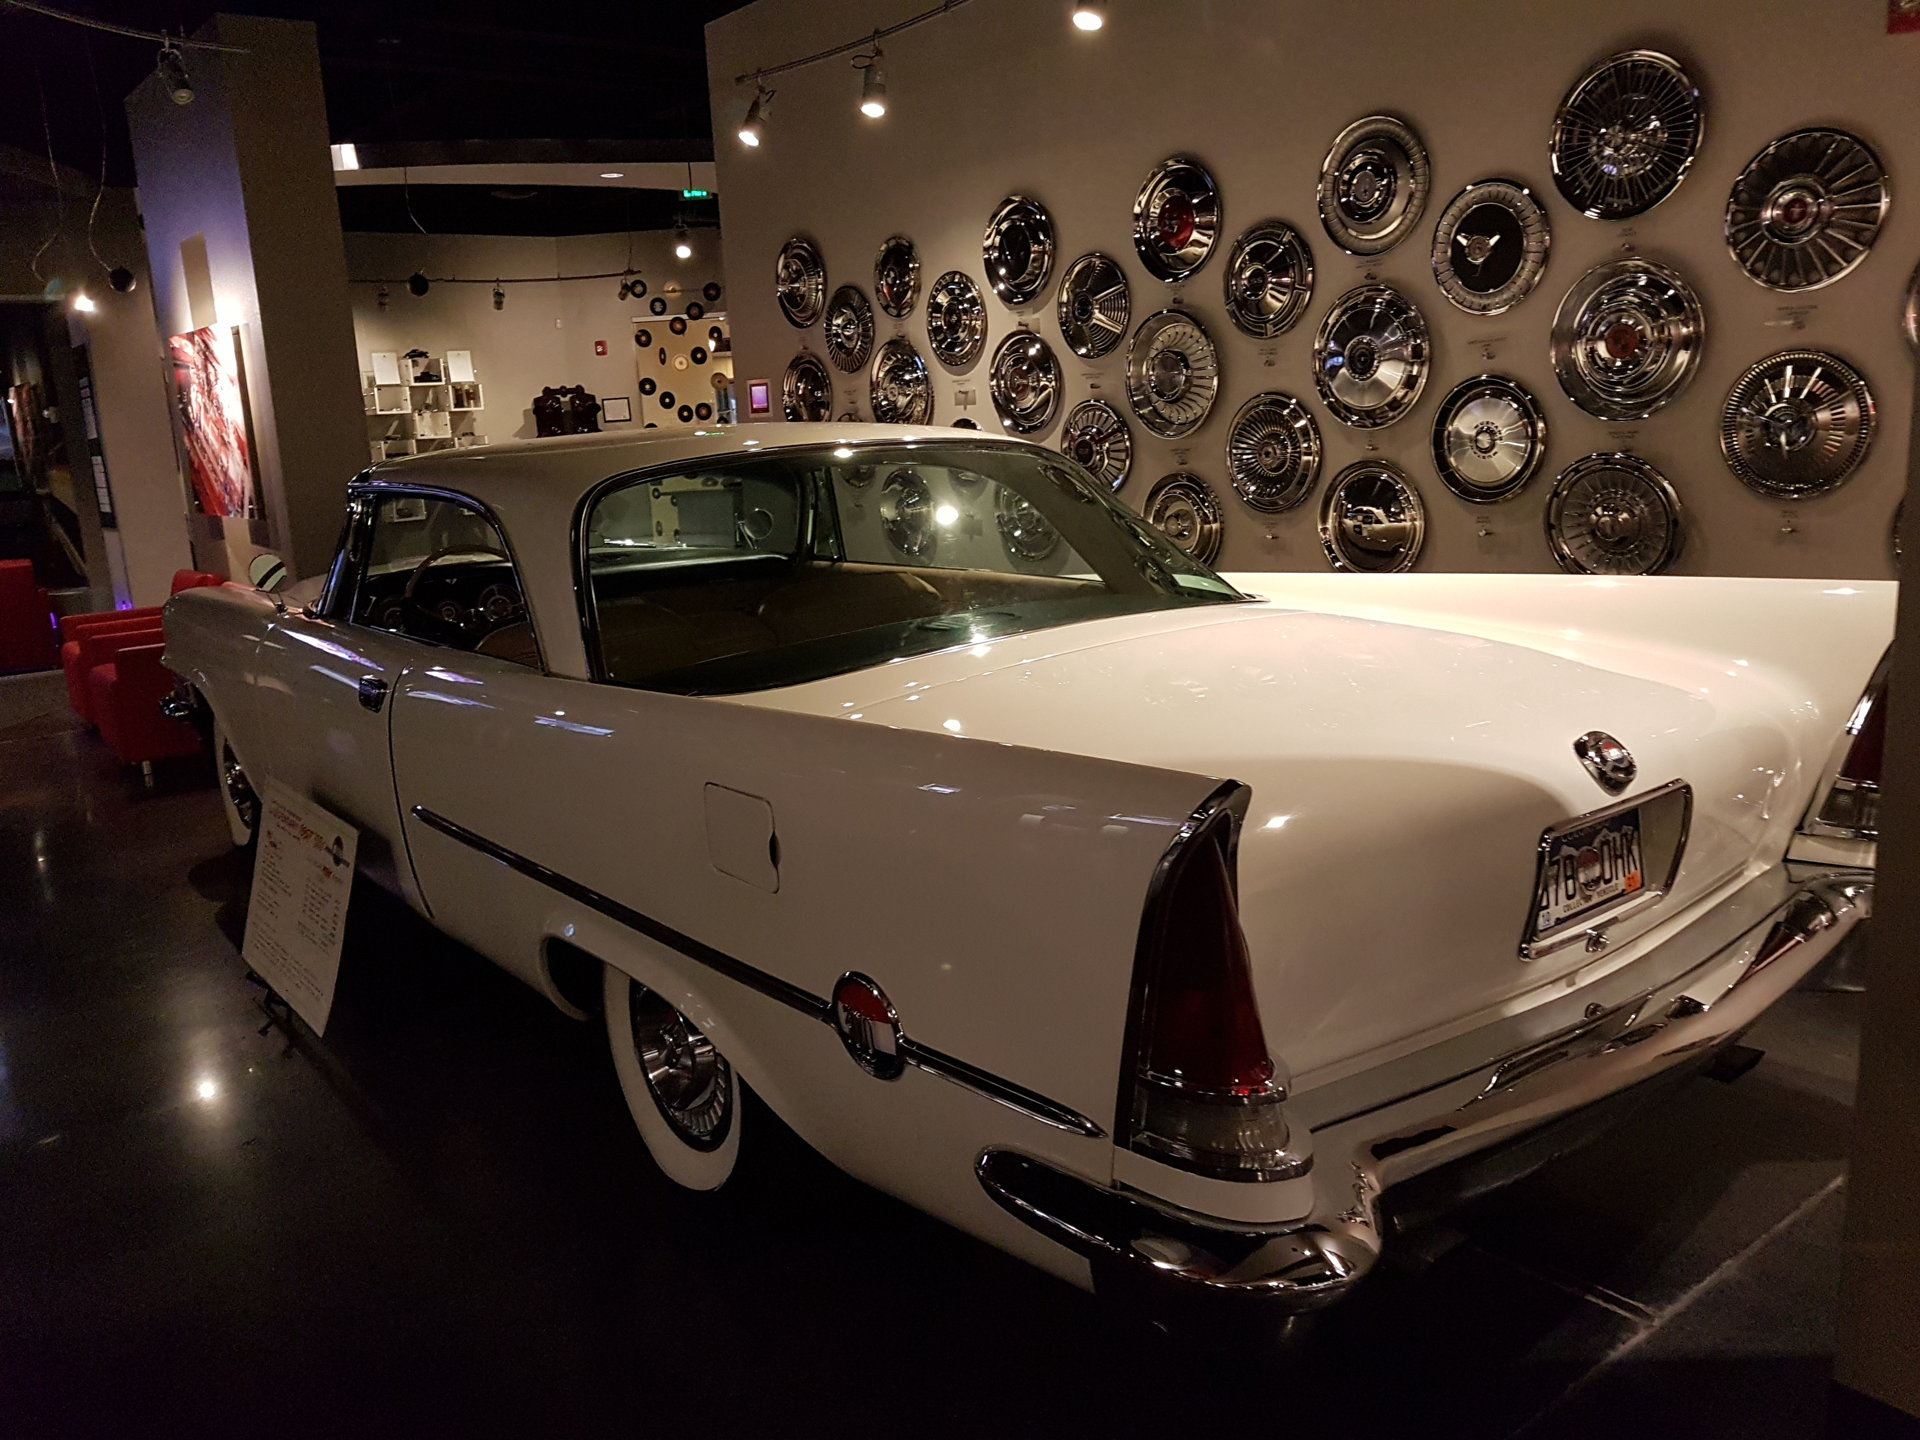 20170428_181456 Great Description About 1955 Chrysler 300 for Sale with Inspiring Images Cars Review